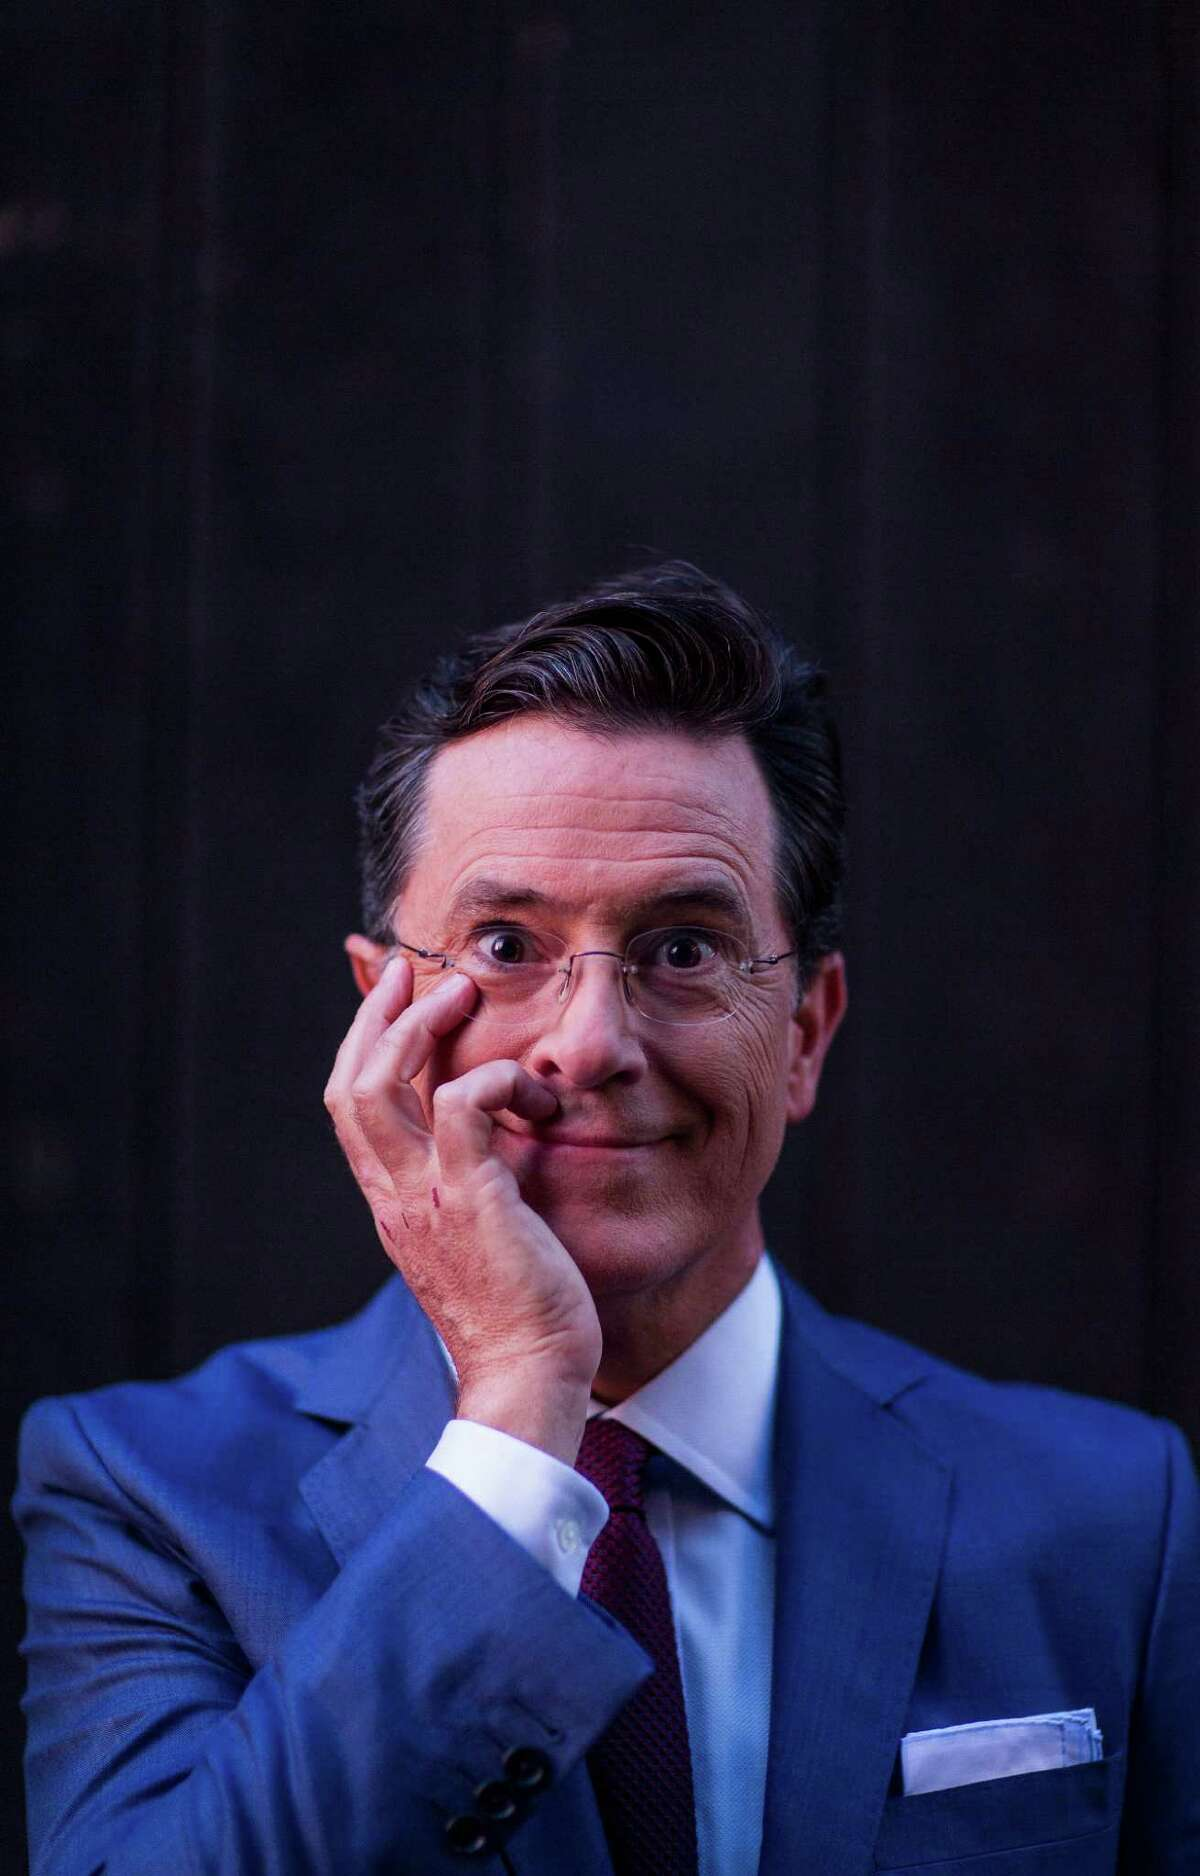 -- PHOTO MOVED IN ADVANCE AND NOT FOR USE - ONLINE OR IN PRINT - BEFORE SEPT. 6, 2015. -- Steven Colbert on the roof of the Ed Sullivan Theater in New York, Aug. 24, 2015. Colbert will be the second person to host ?